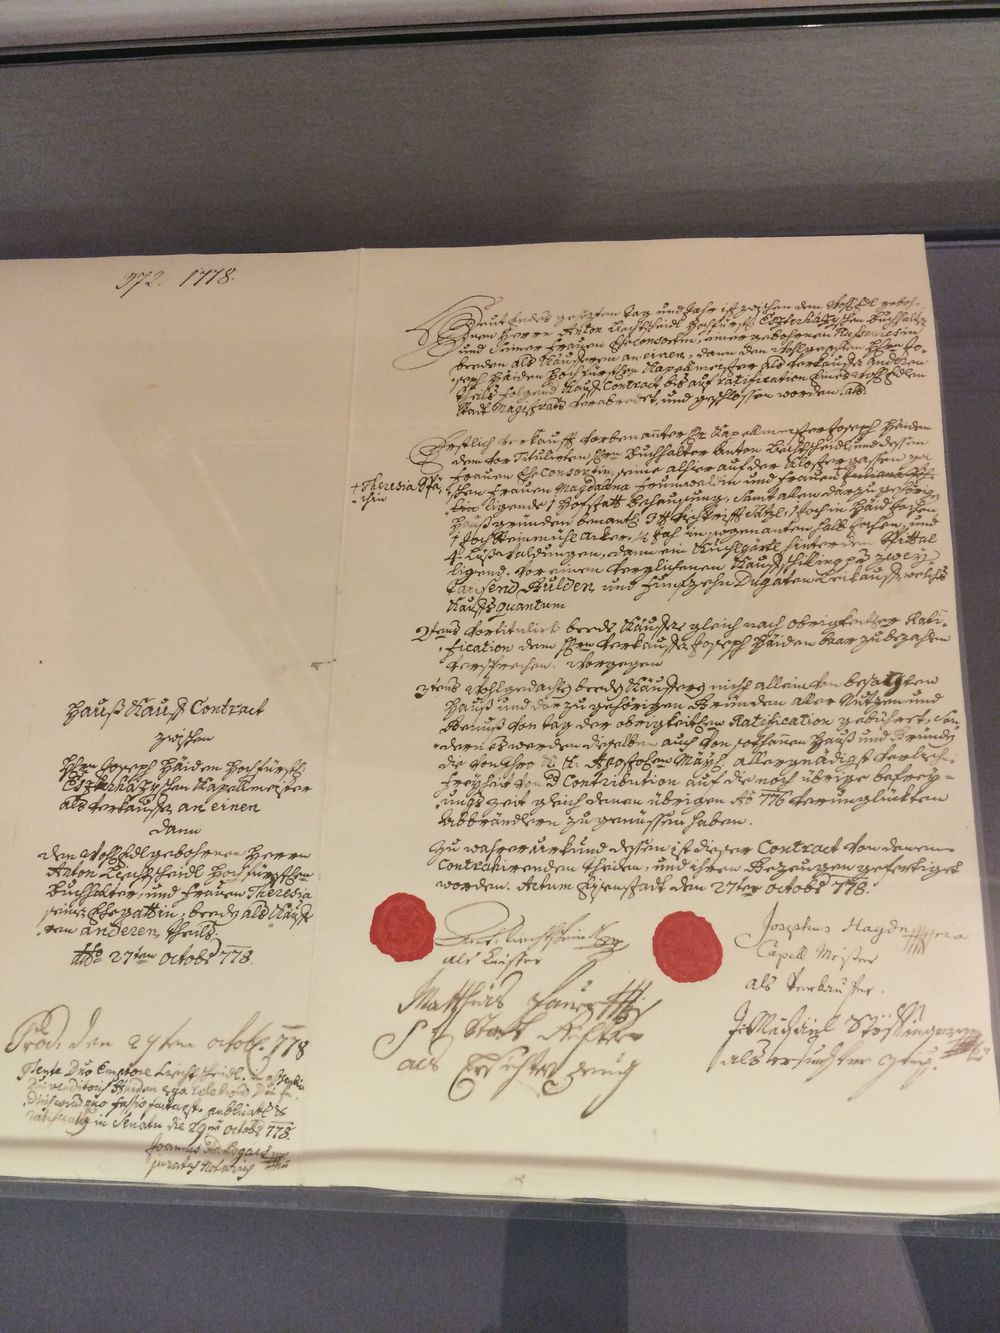 Haydn's signature (on the right) on the Deed of Trust for his home near Esterhazy Castle